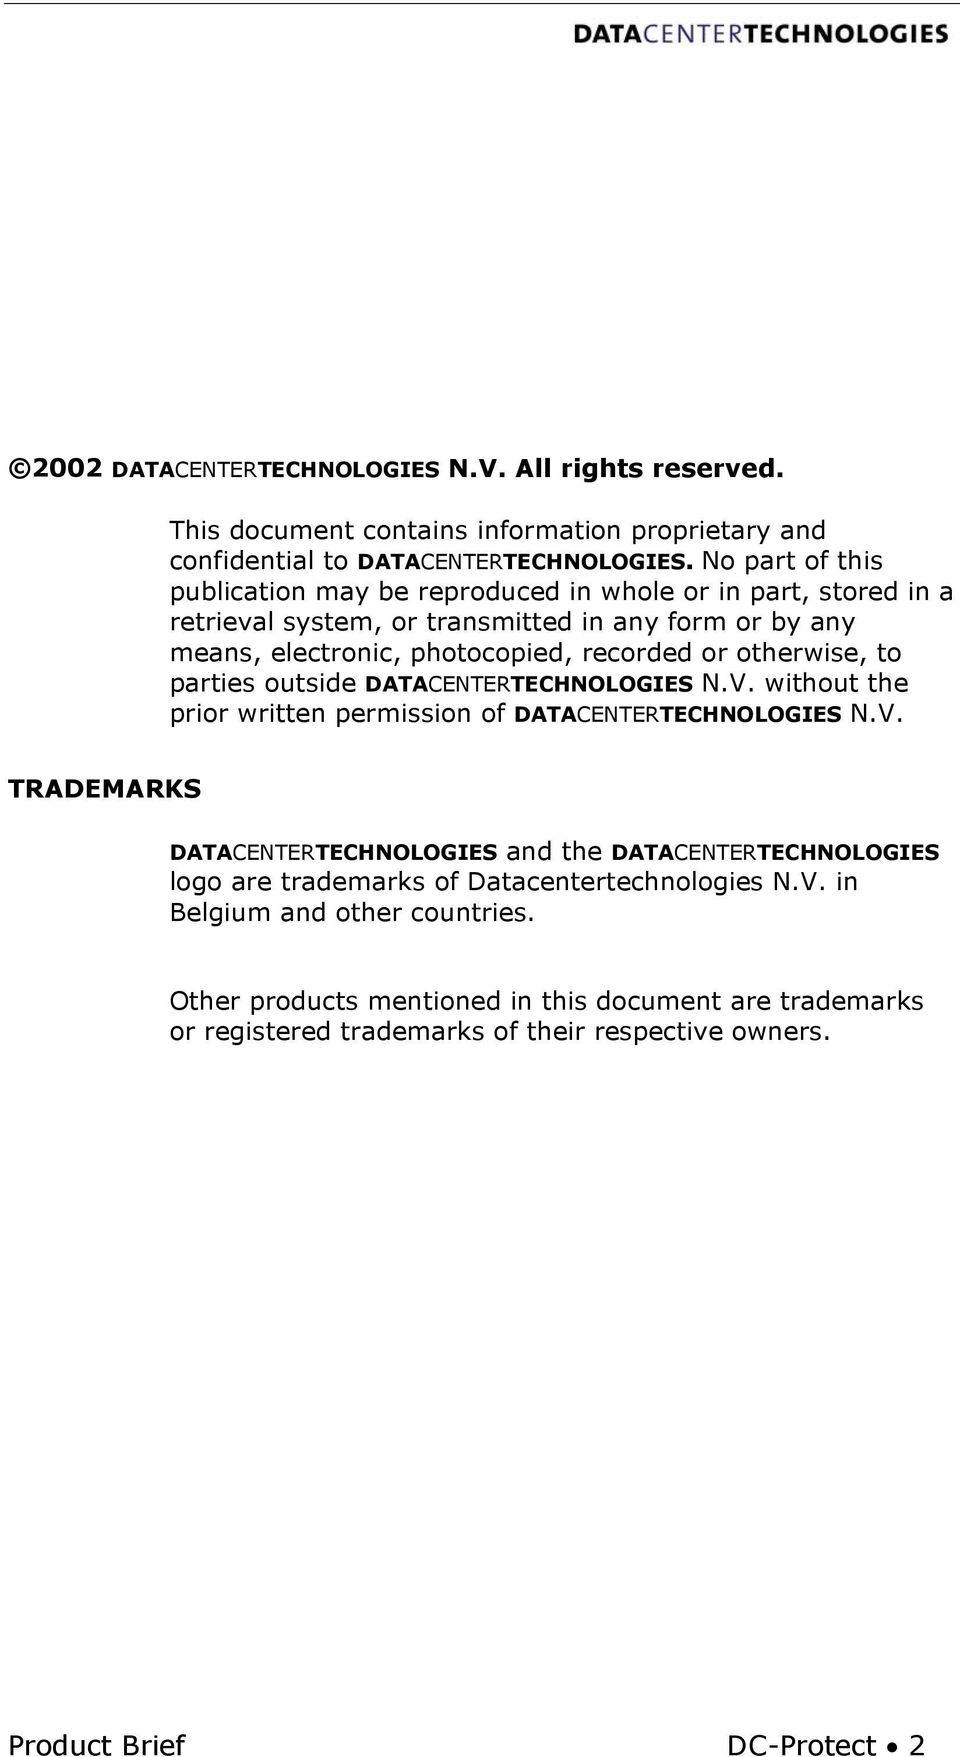 otherwise, to parties outside DATACENTERTECHNOLOGIES N.V. without the prior written permission of DATACENTERTECHNOLOGIES N.V. TRADEMARKS DATACENTERTECHNOLOGIES and the DATACENTERTECHNOLOGIES logo are trademarks of Datacentertechnologies N.